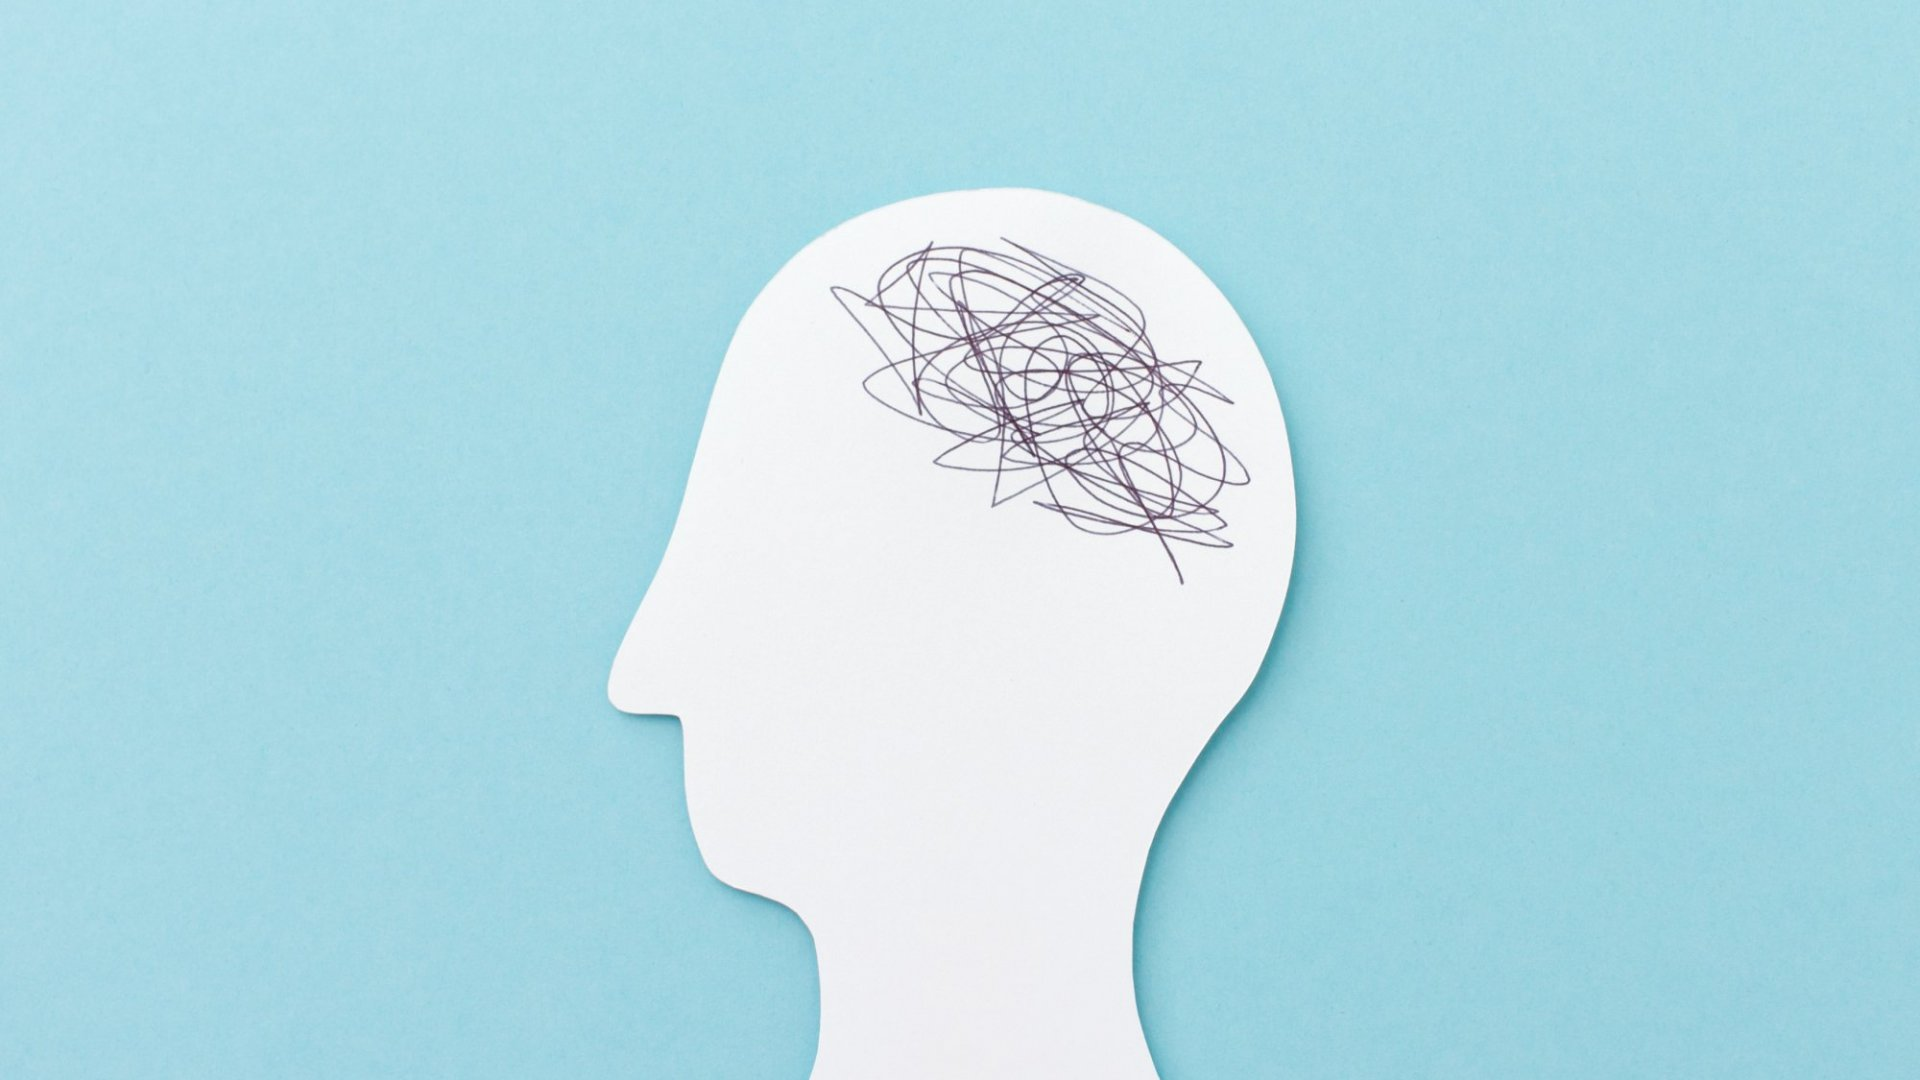 Employees Are Dealing With Major Anxiety Because of the Coronavirus. Here Are 3 Ways Emotional Intelligence Can Help